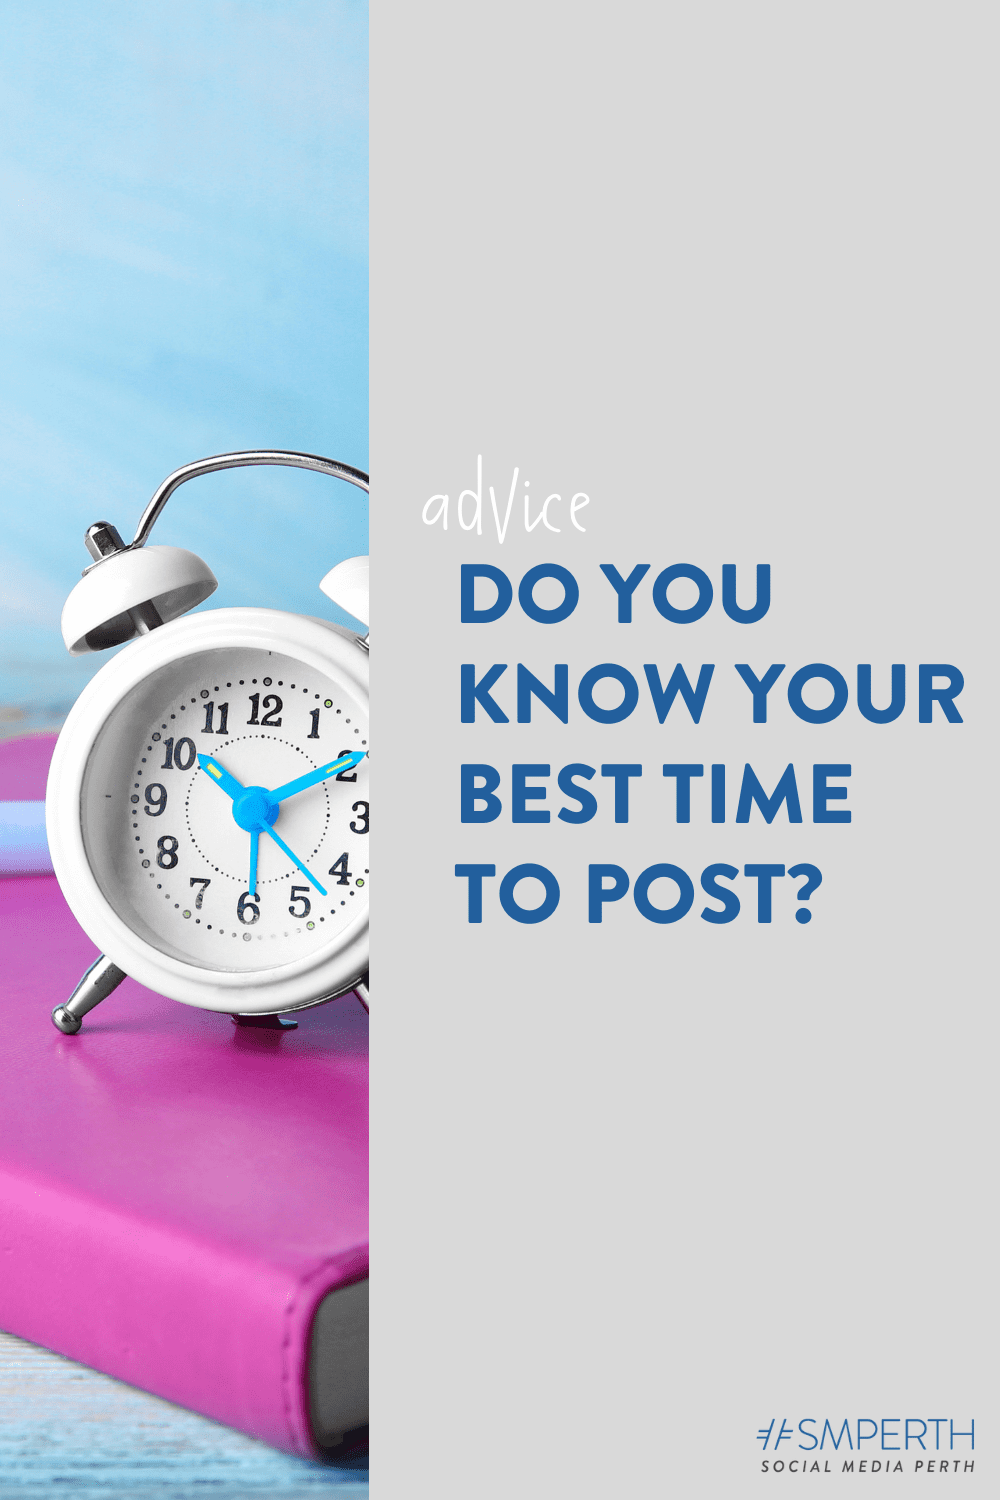 Do You Know Your Best Time To Post?